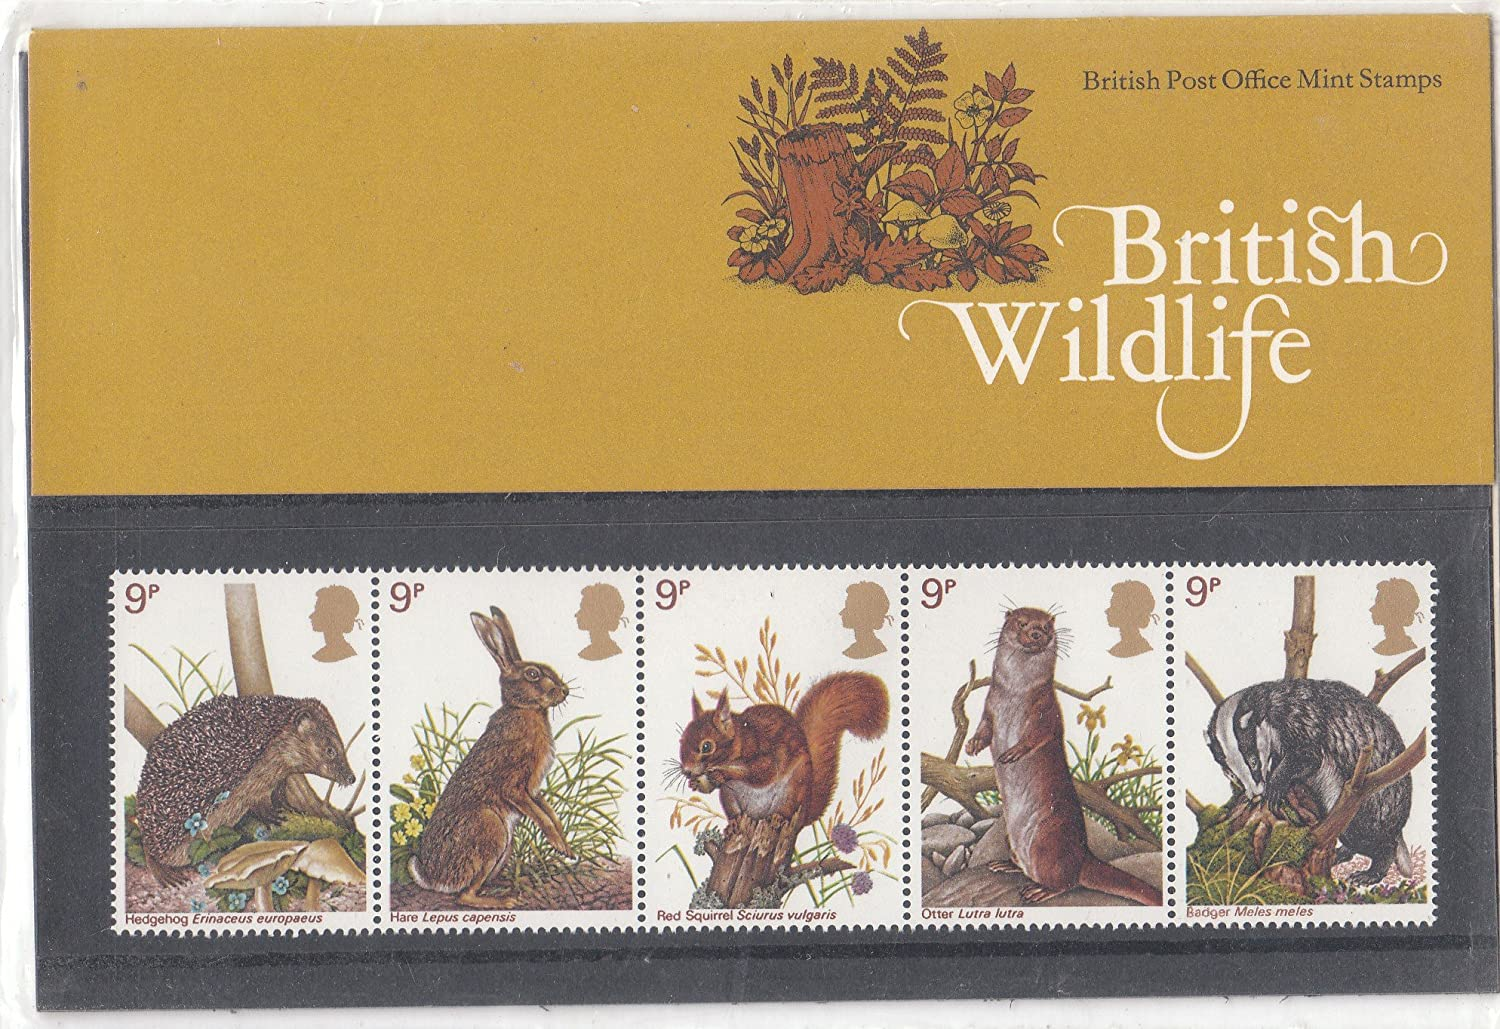 1977 BRITISH WILDLIFE STAMPS Presentation Pack. Royal Mail